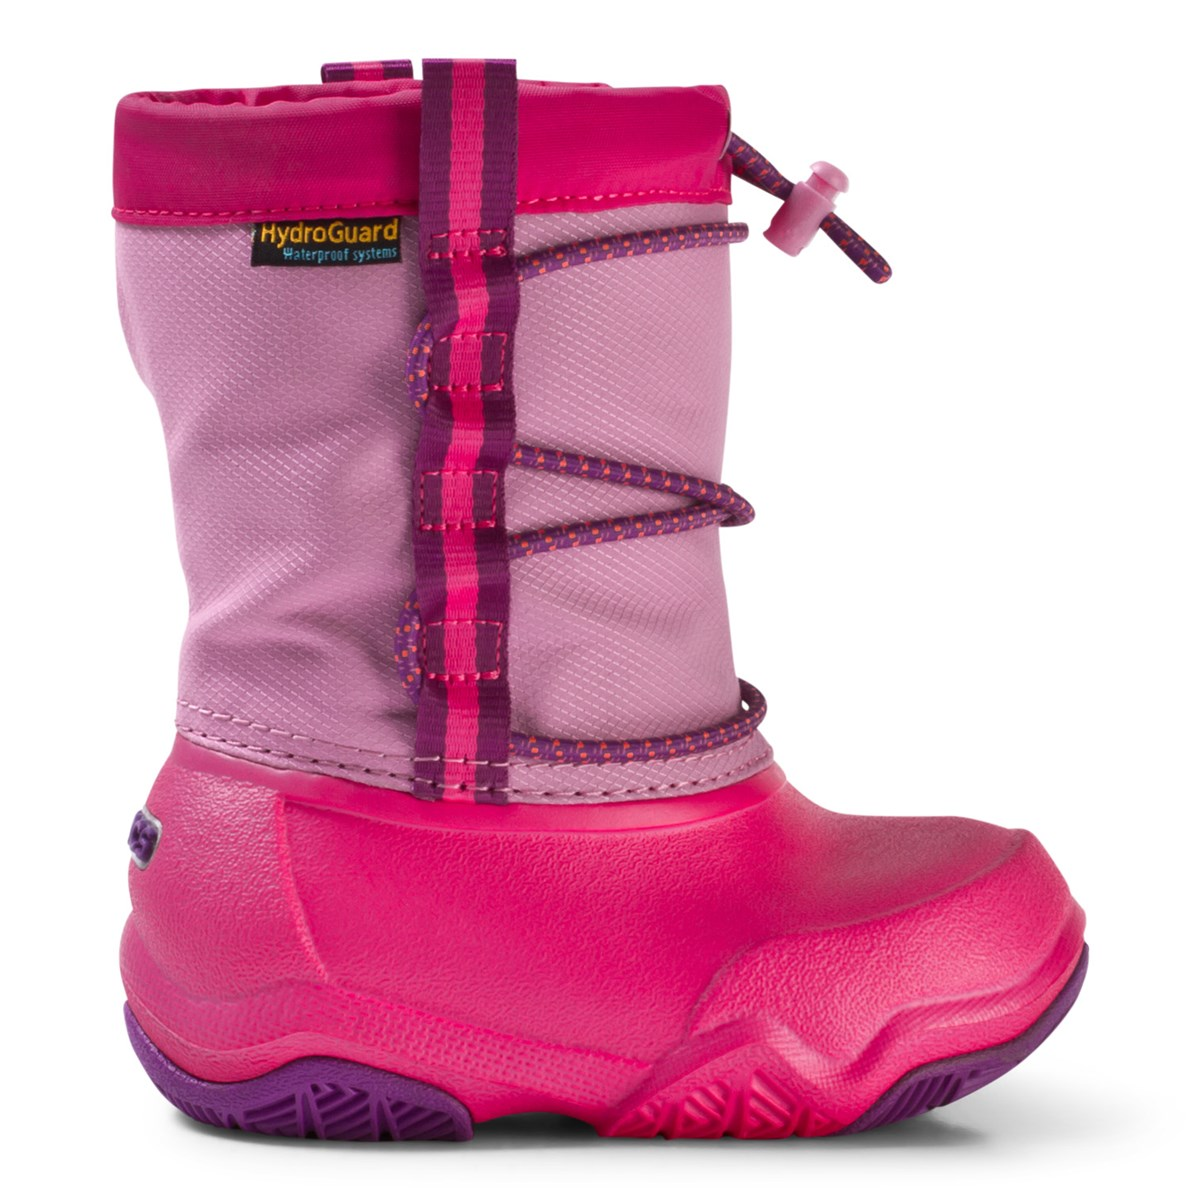 65663141fdd4 Crocs Kids Party Pink Candy Pink Swiftwater Waterproof Boot ...